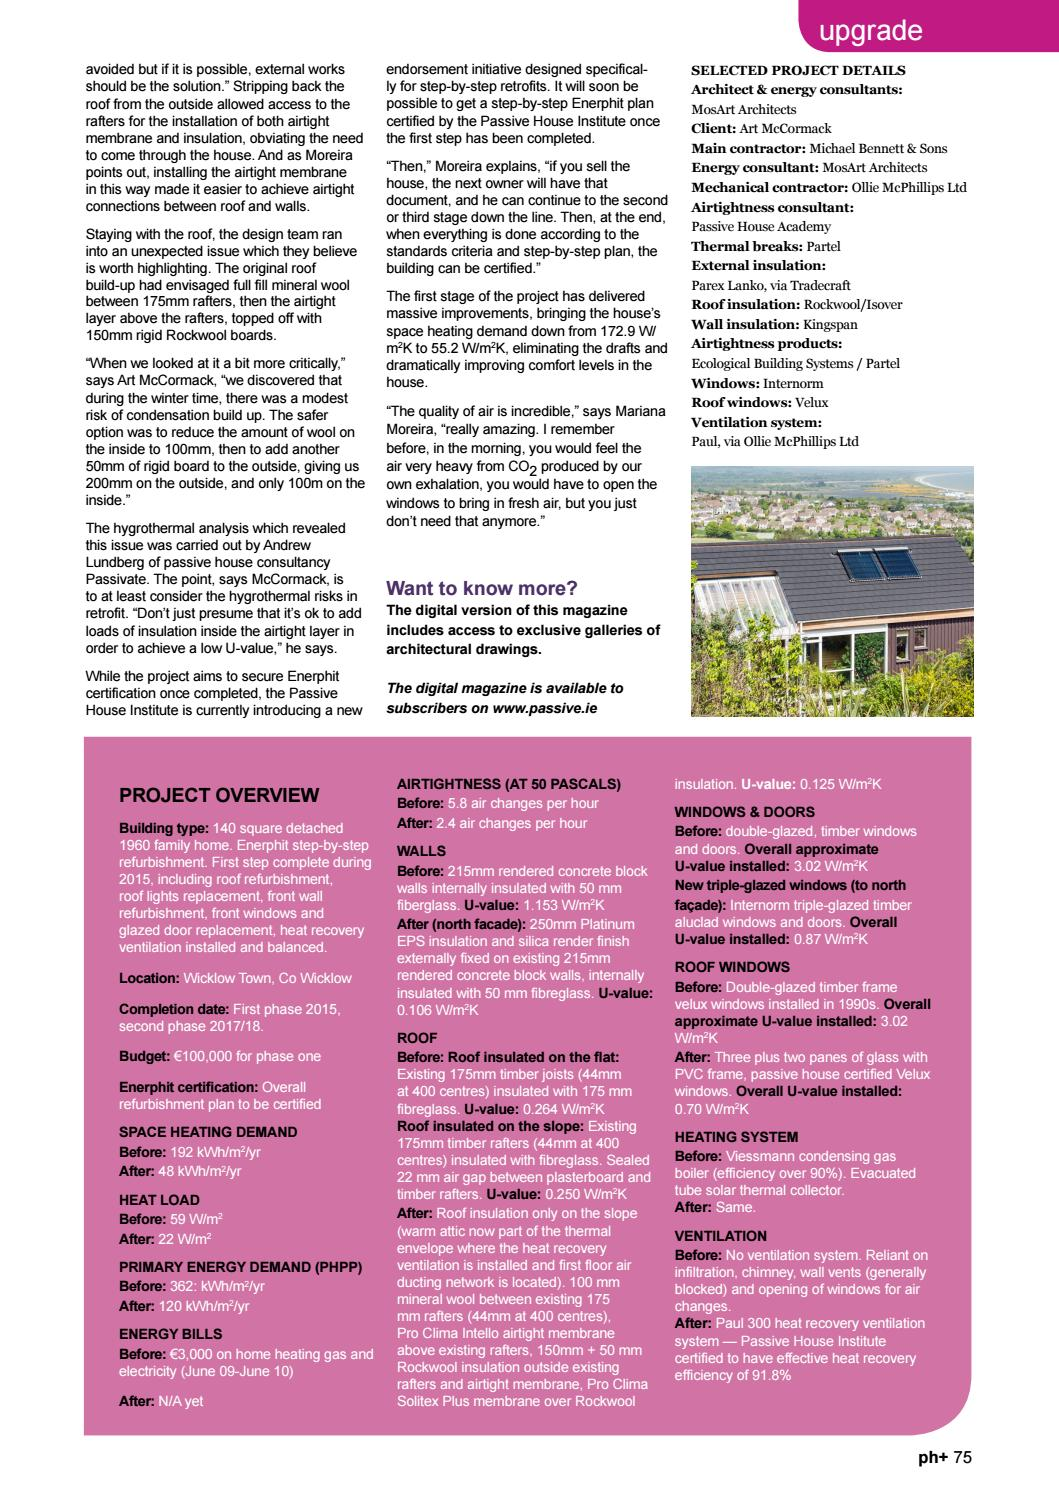 Passive house plus issue 16 (uk edition) by Passive House